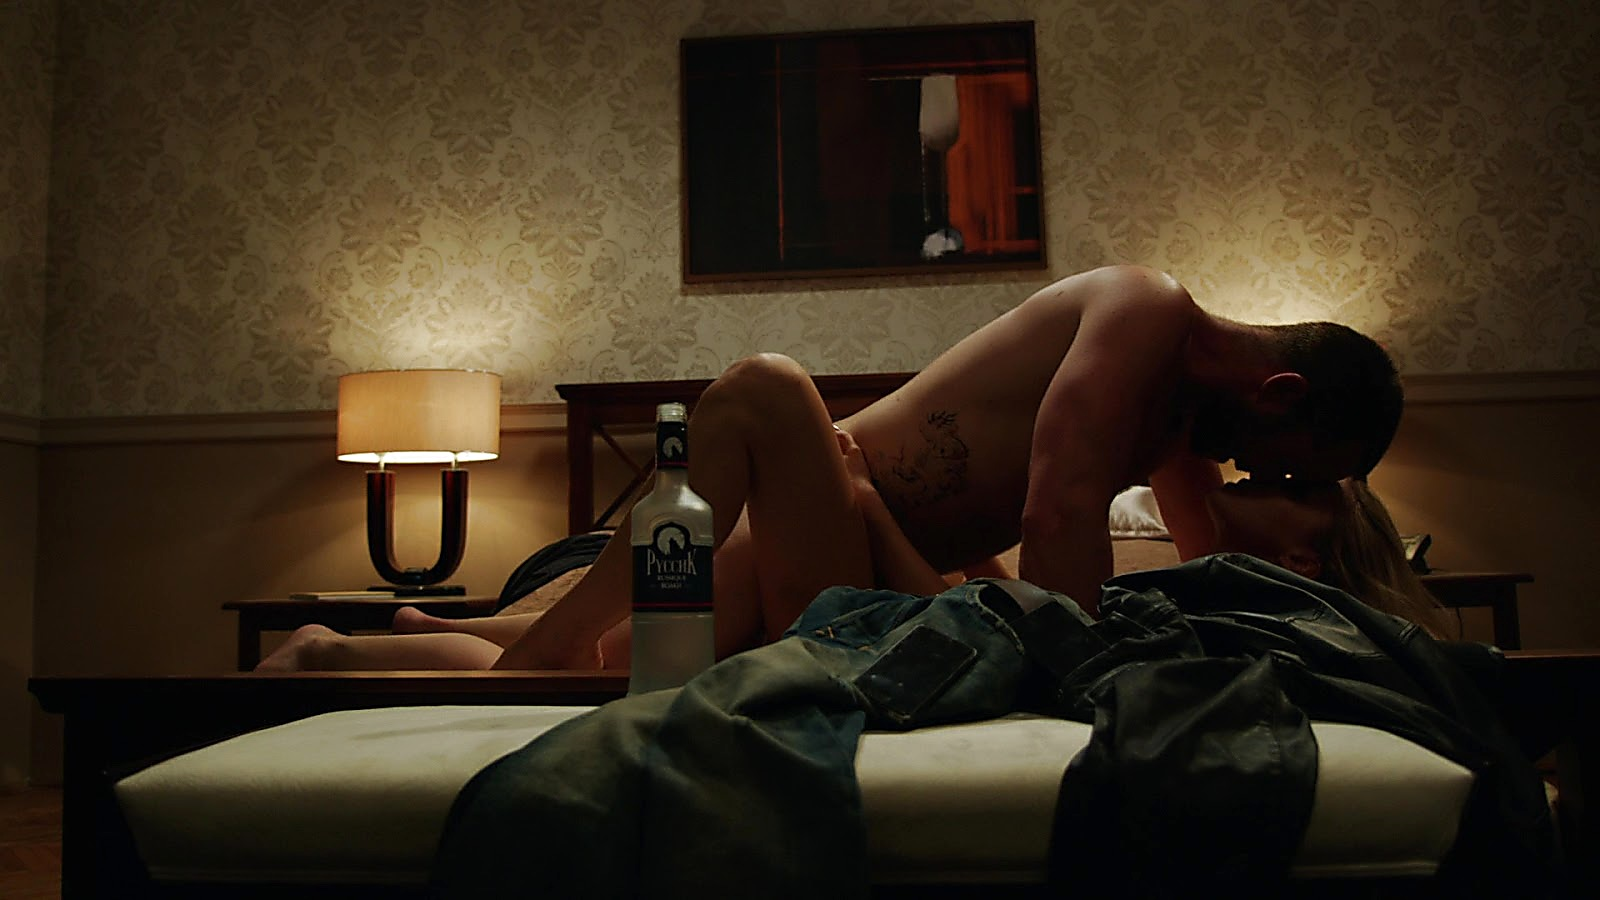 Sullivan Stapleton sexy shirtless scene April 6, 2020, 6am